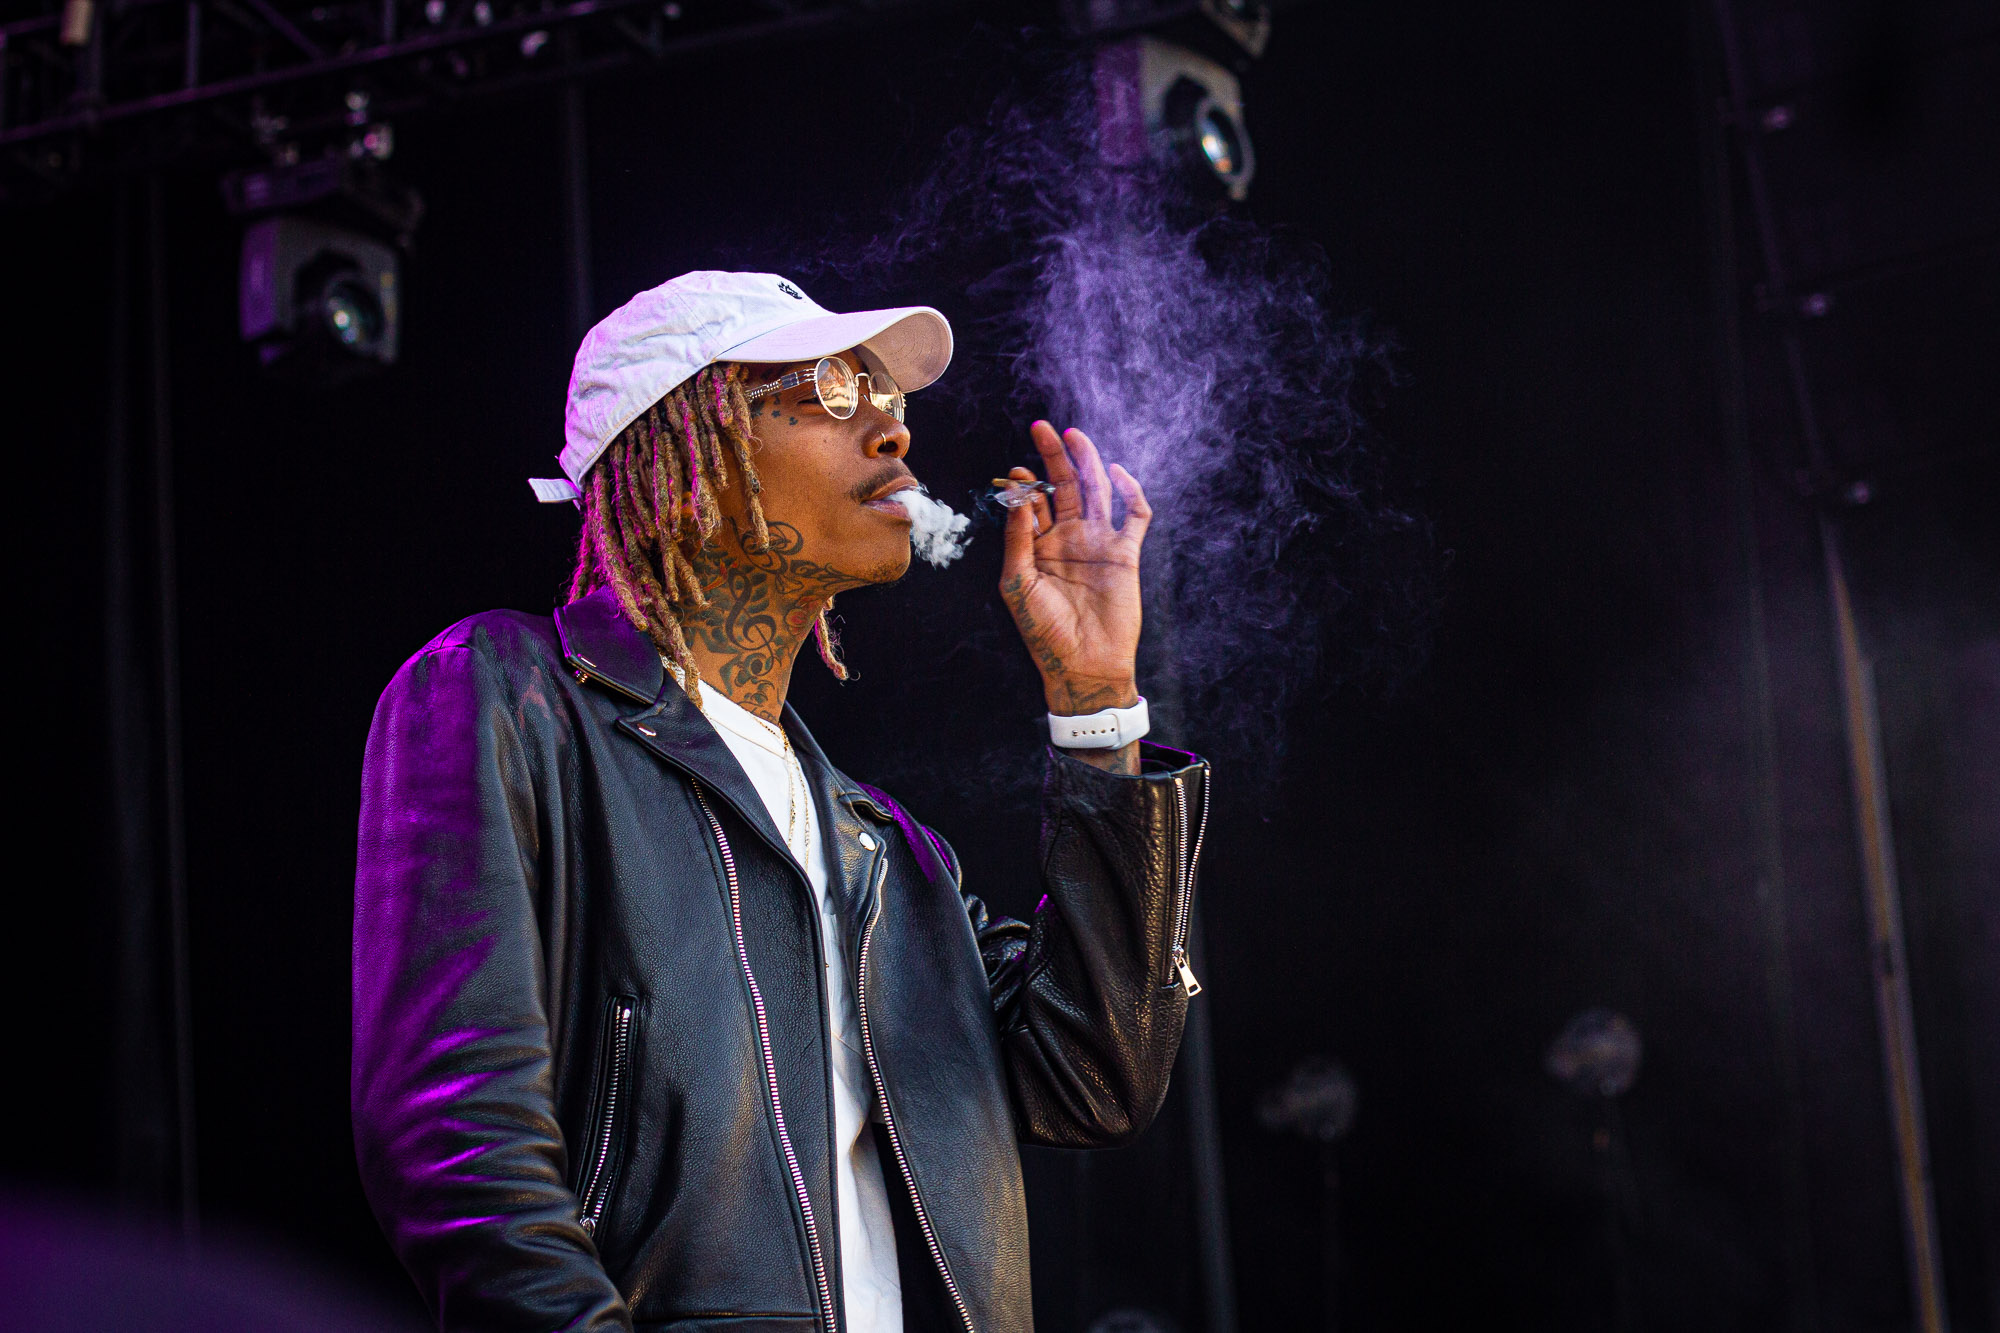 Wiz Khalifa Hints He Is Done Wearing Masks In A Tweet